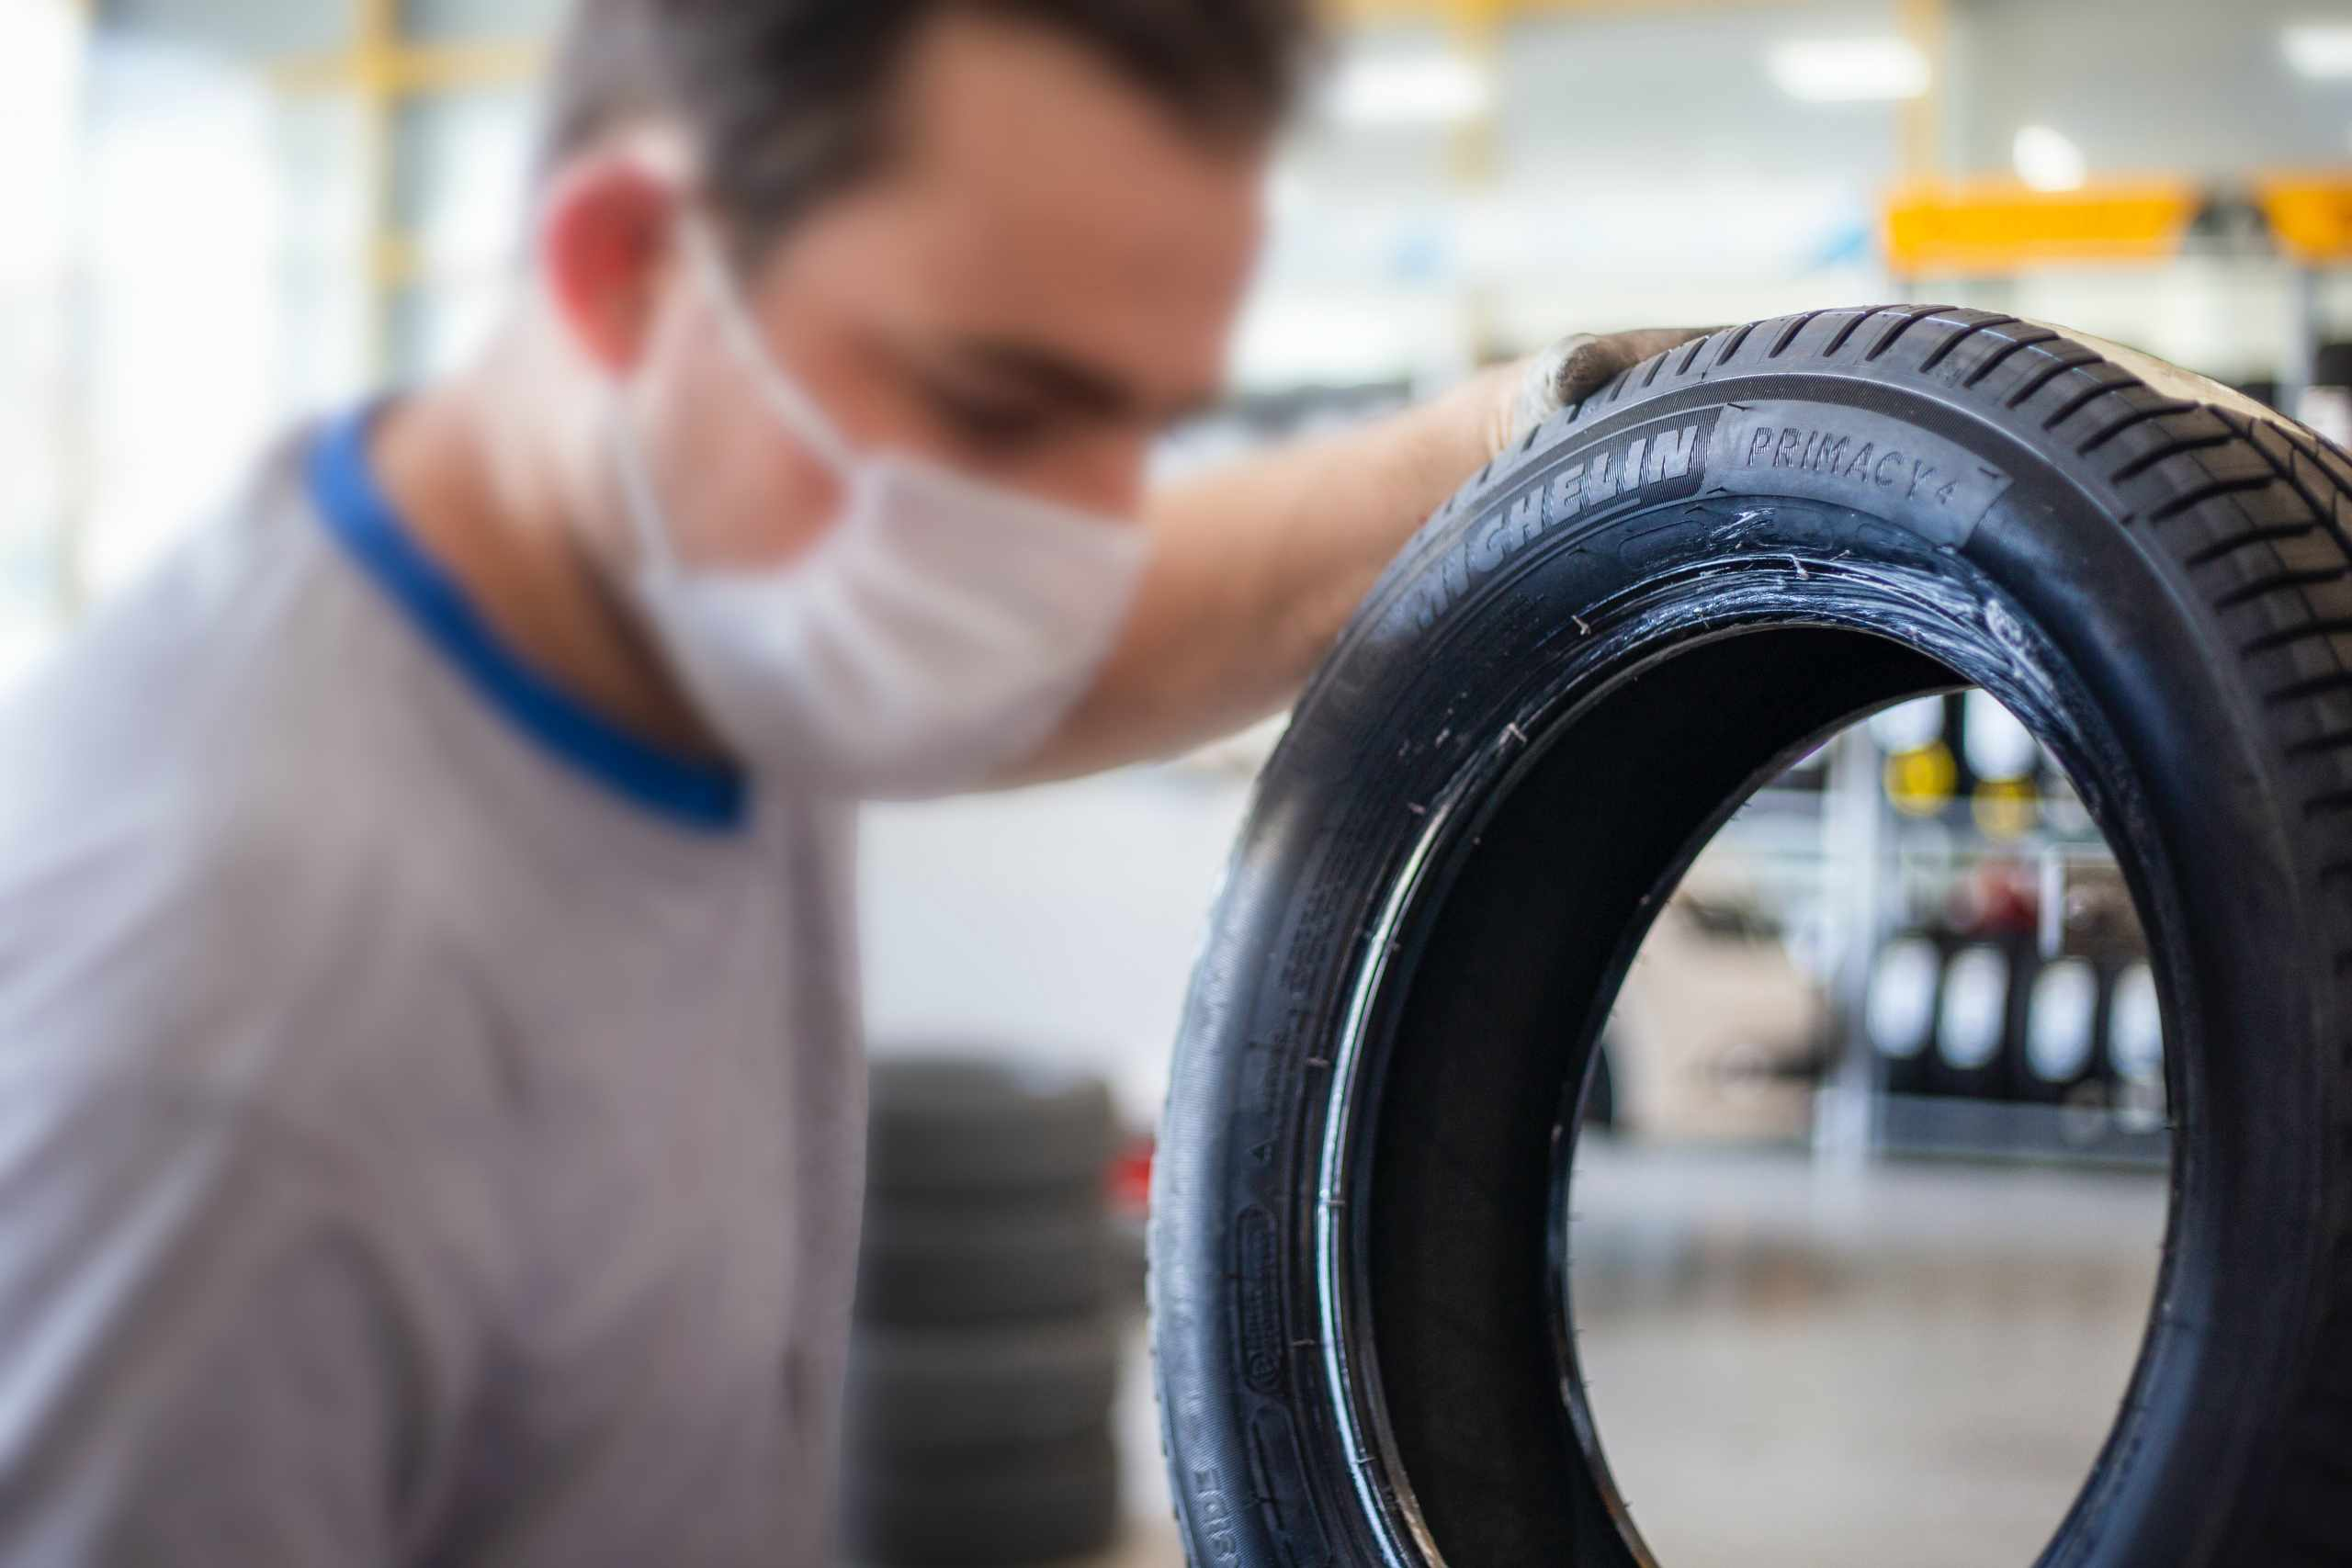 Make sure the tyres are ready before hitting the road